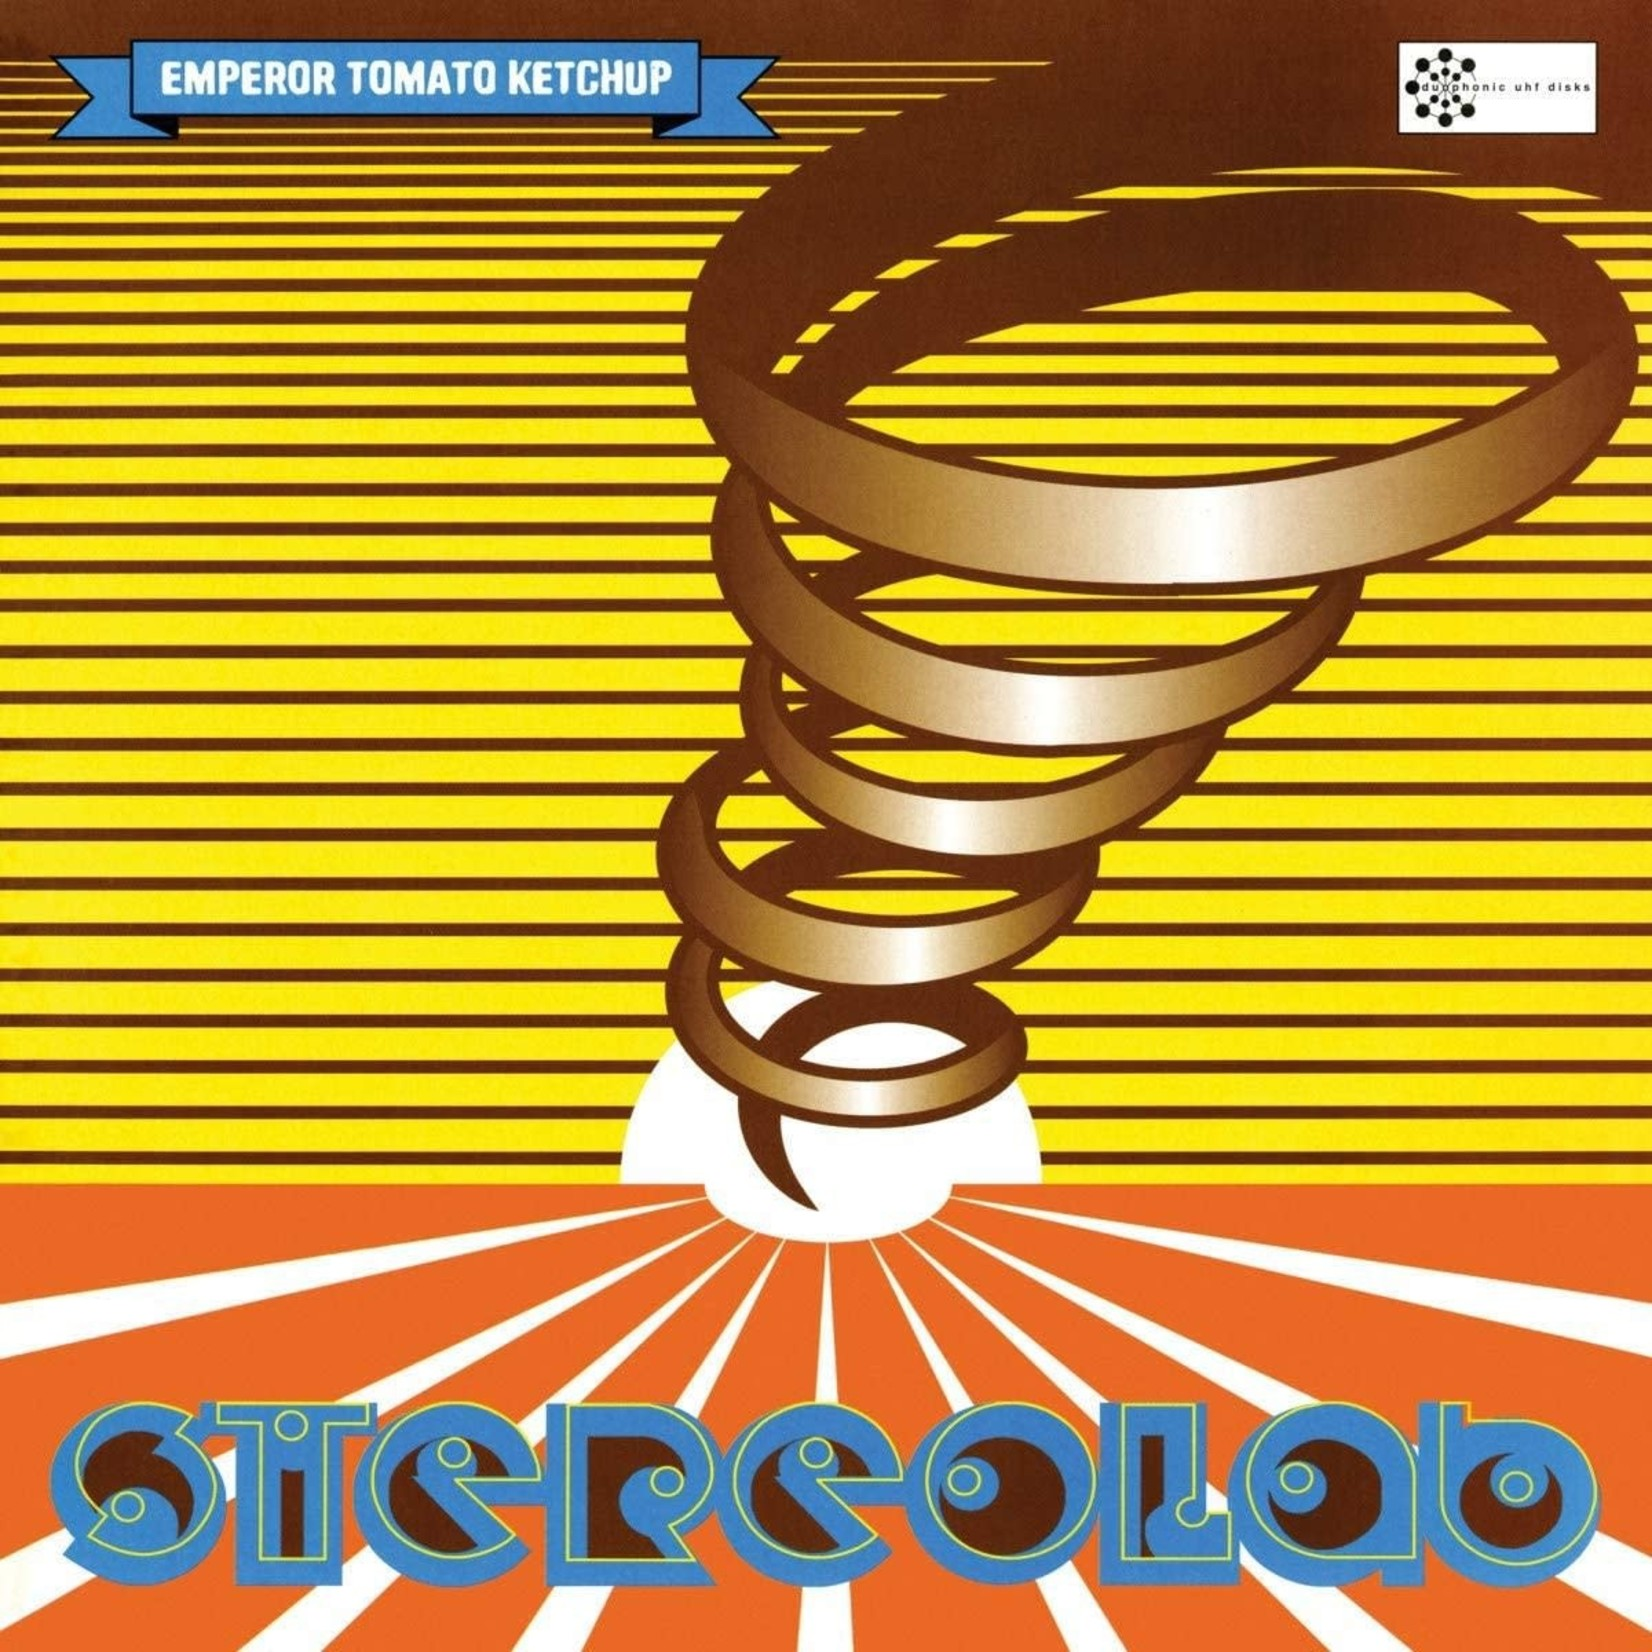 [New] Stereolab: Emperor Tomato Ketchup (3LP, Expanded Ed.)